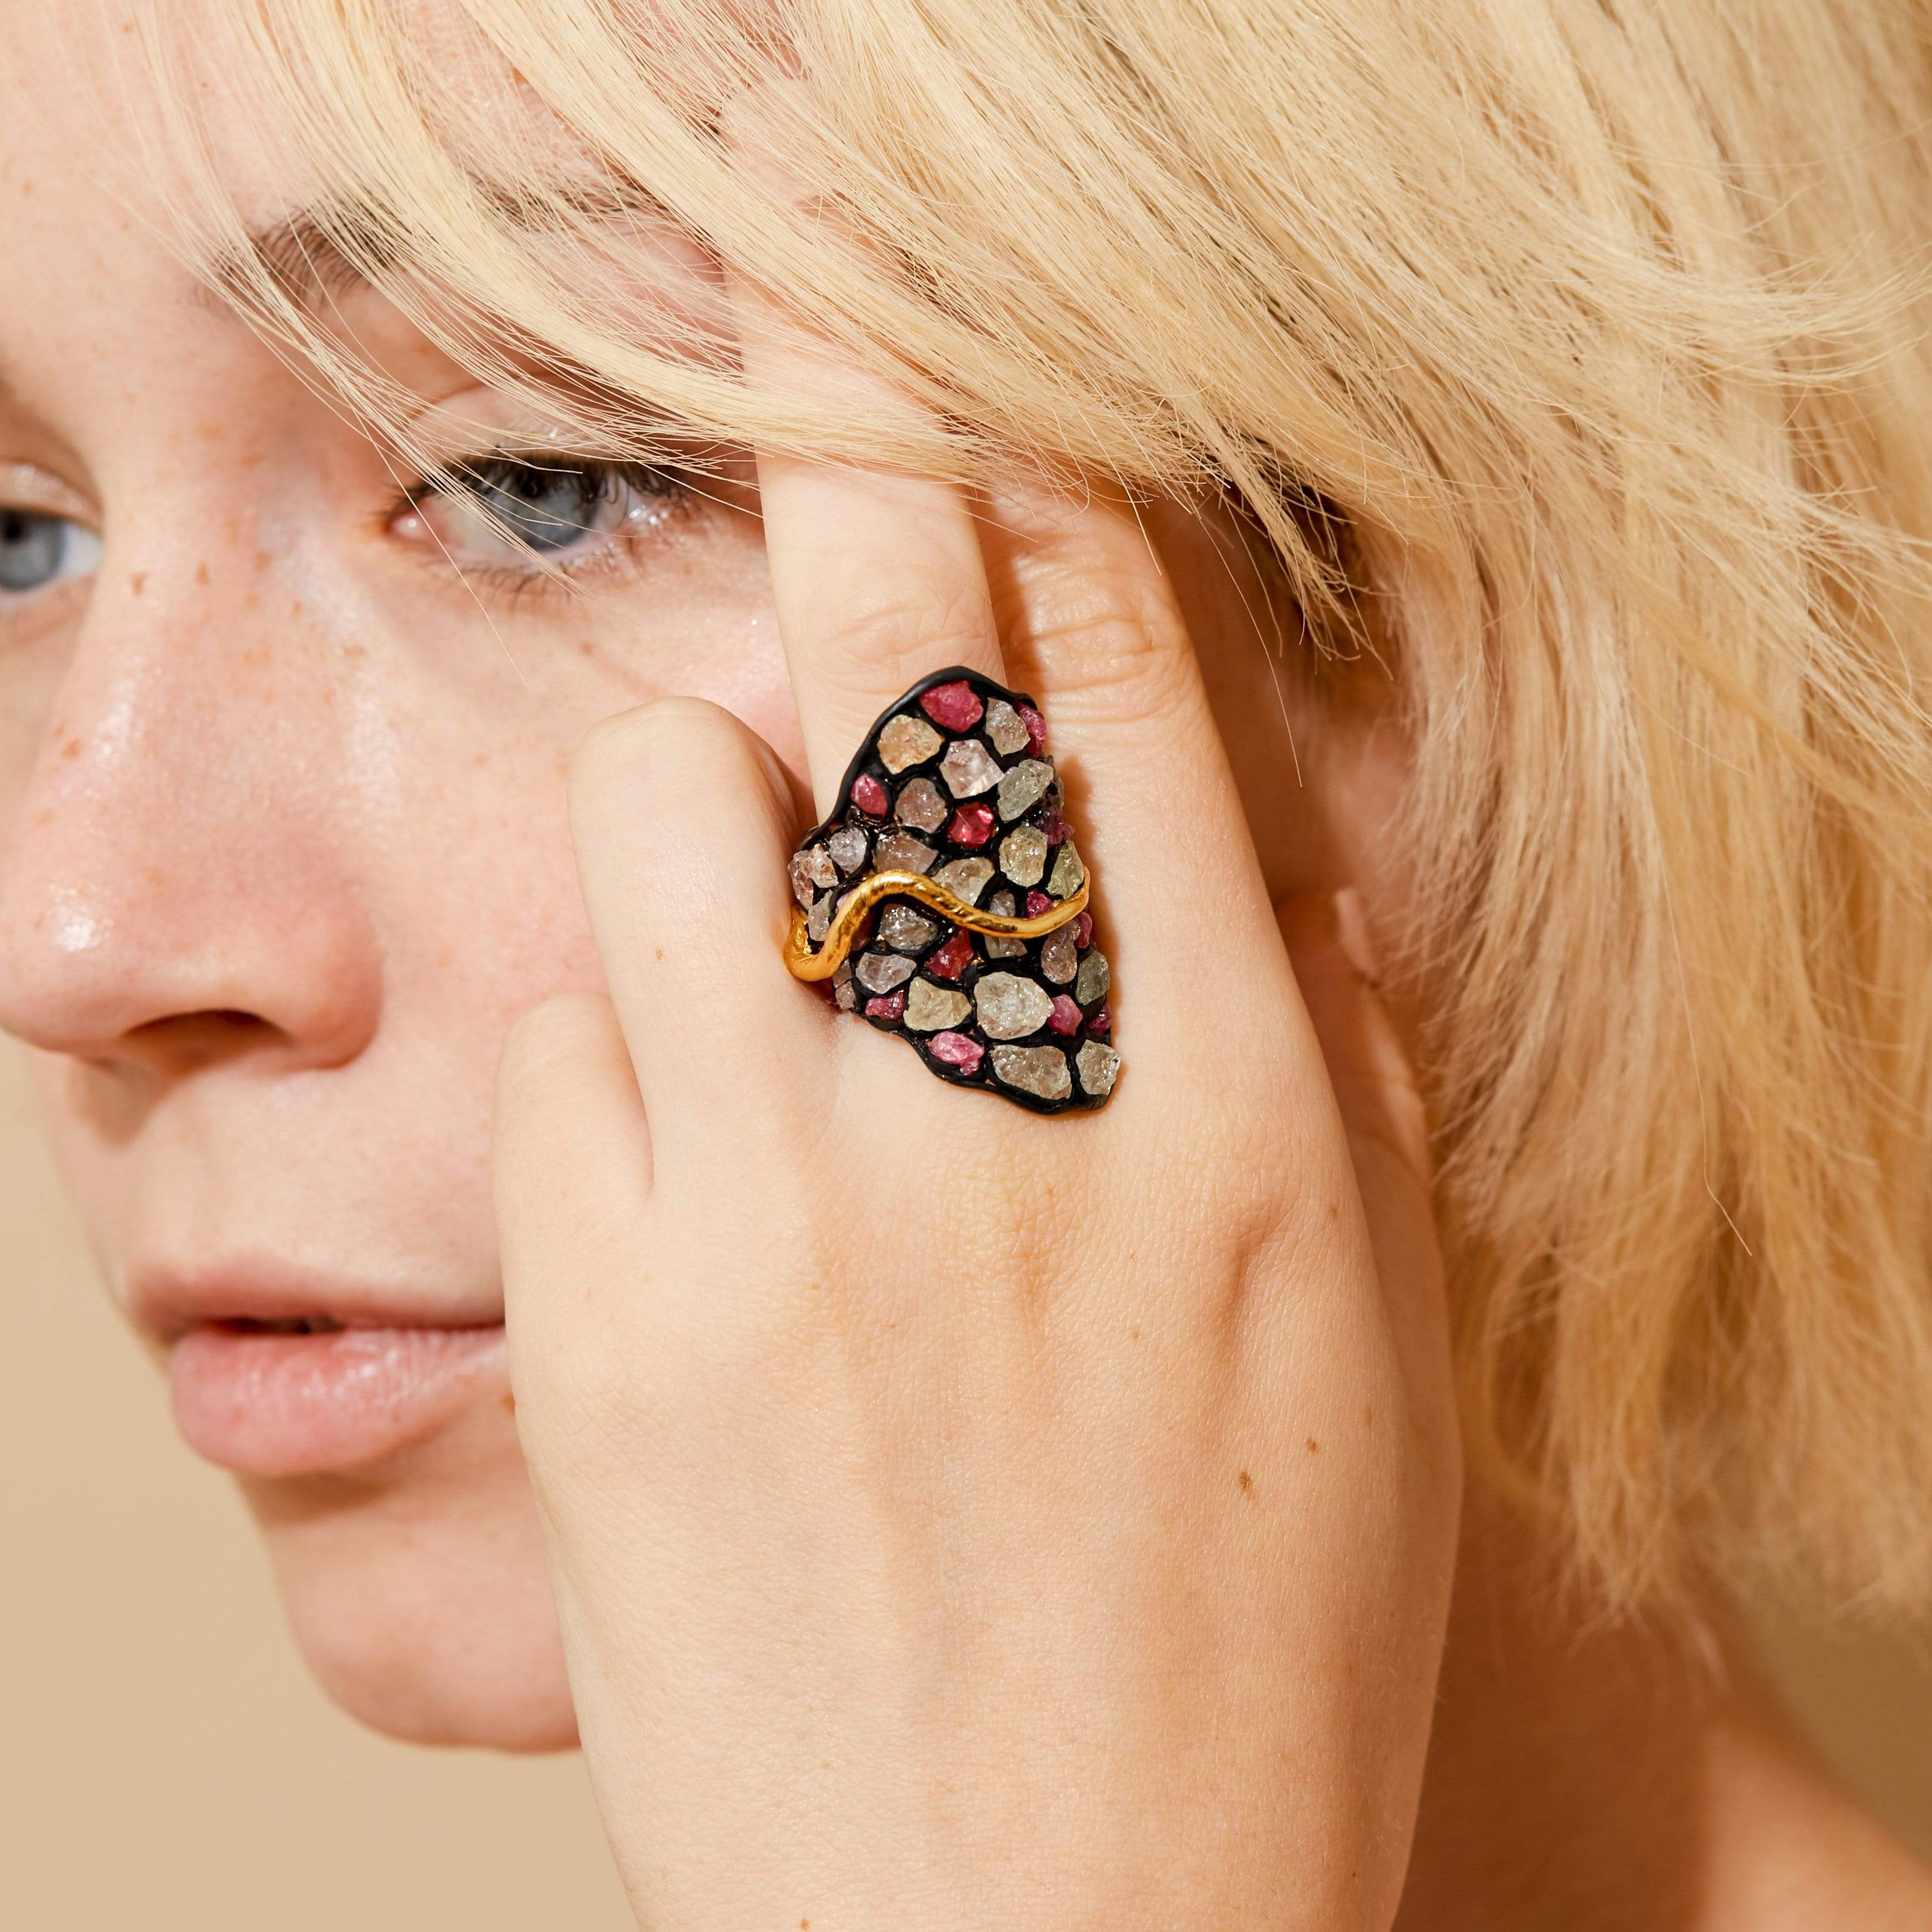 Lila Ring, Anthracite, black, Exclusive, Gold, Ruby, Sapphire, spo-disabled, StoneColor:PastelColor, StoneColor:Pink, Style:Statement, Type:StainedGlass Ring